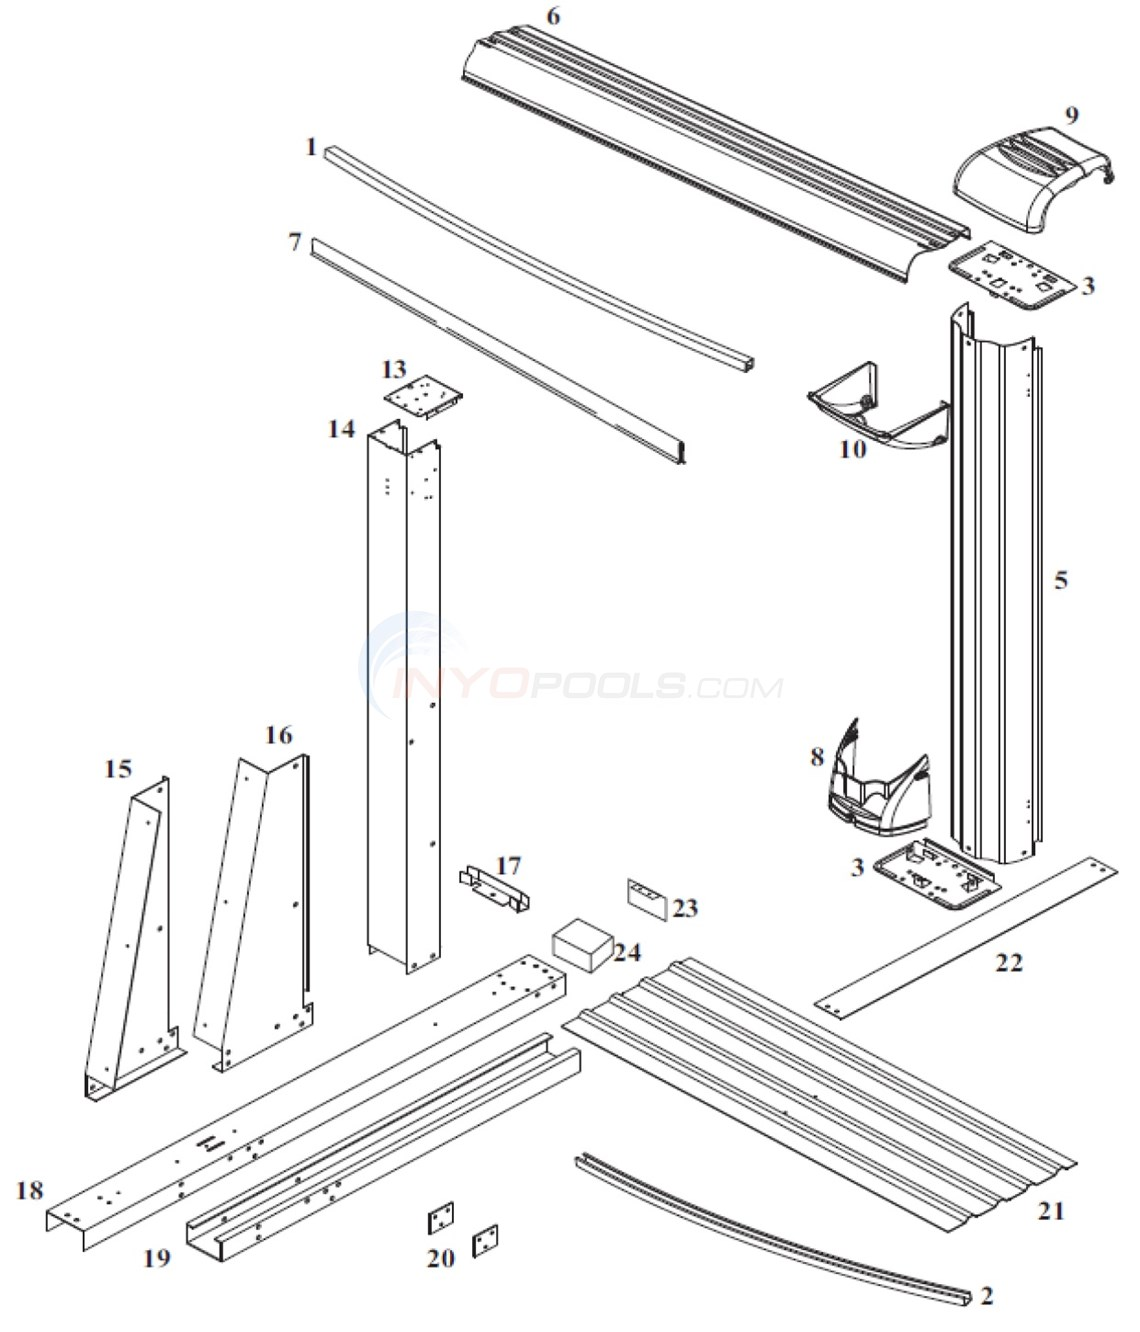 Cayman 12'x24' Oval (Steel Top Rail, Steel Upright) Diagram